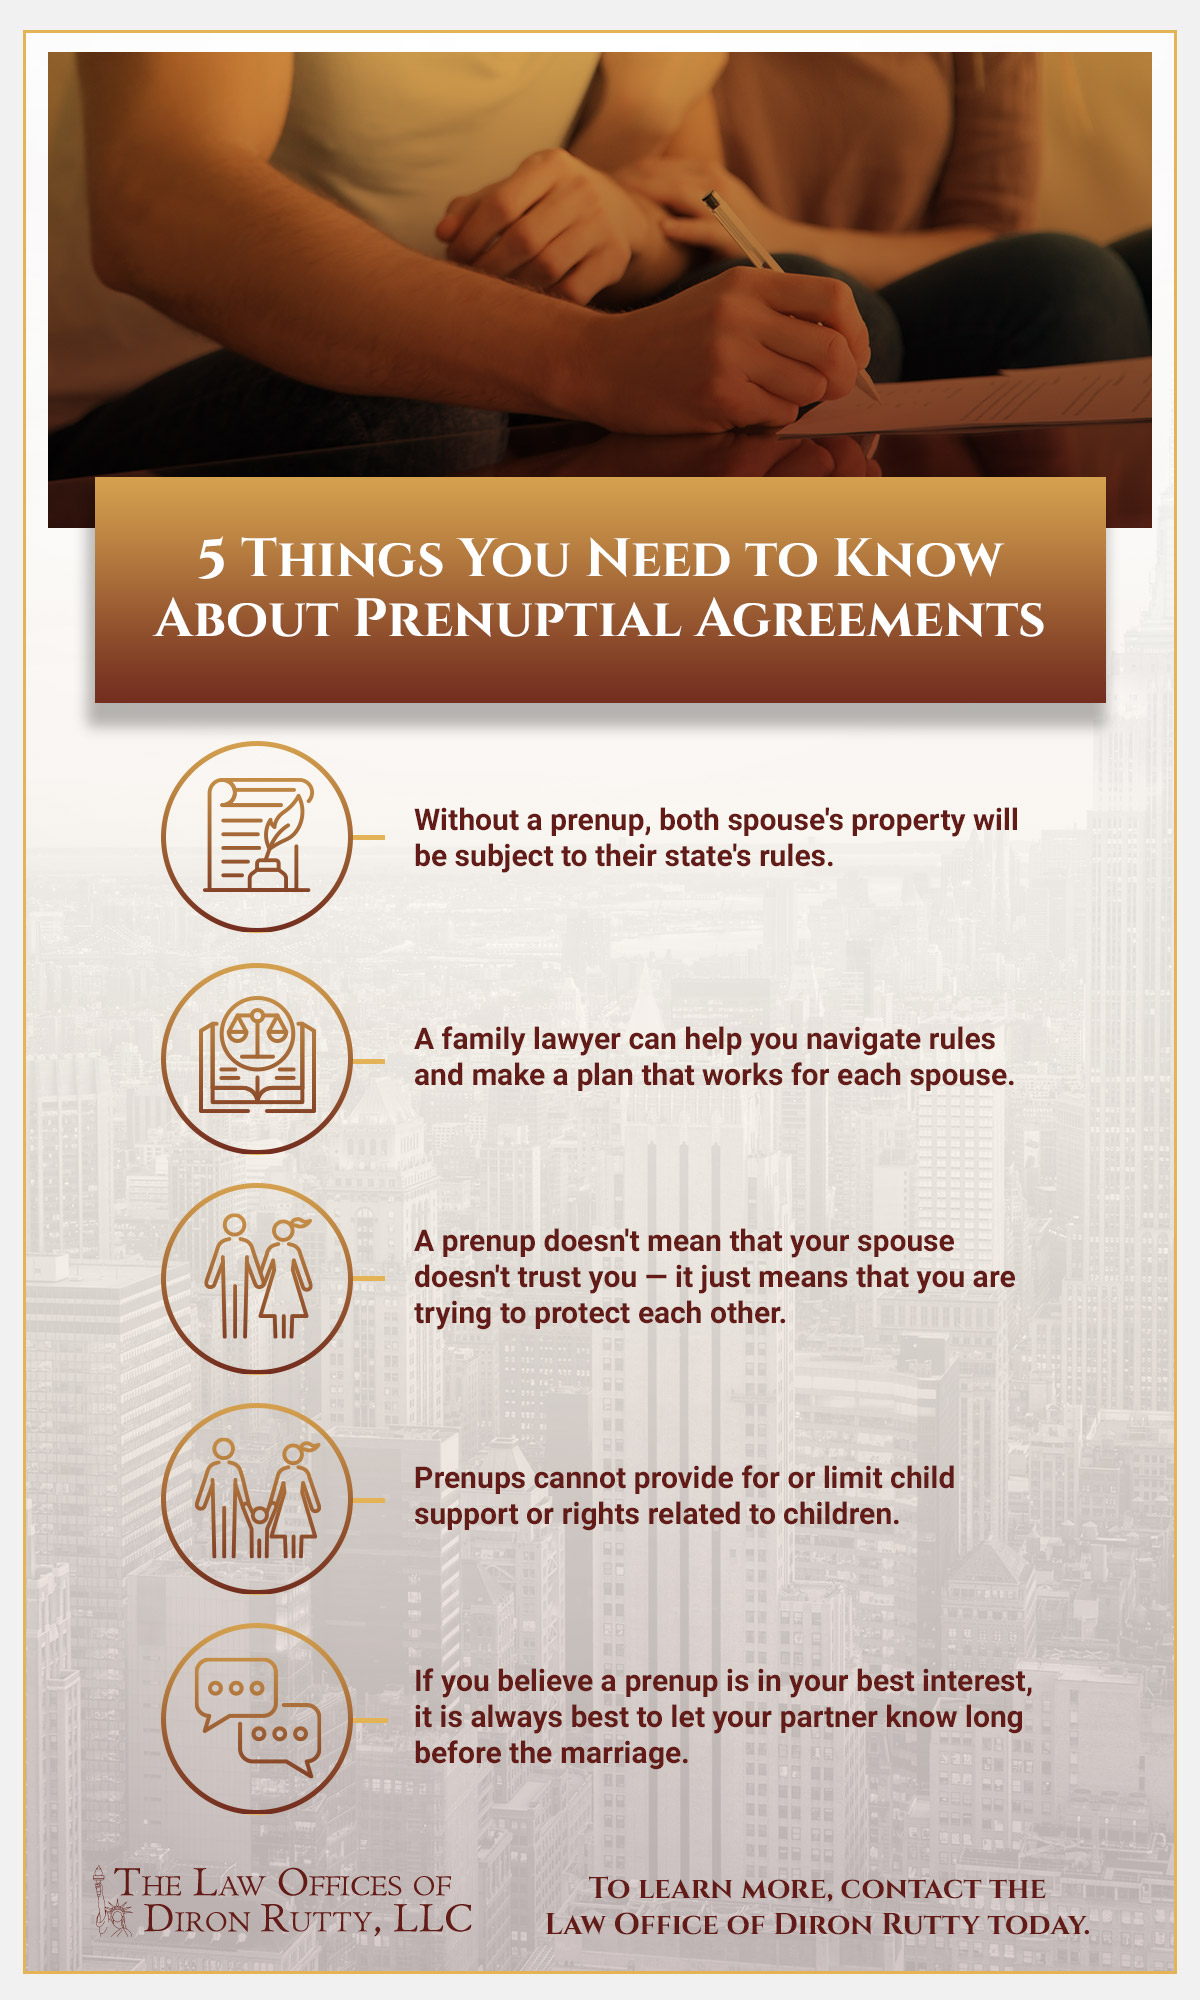 Infographic about prenuptial agreements